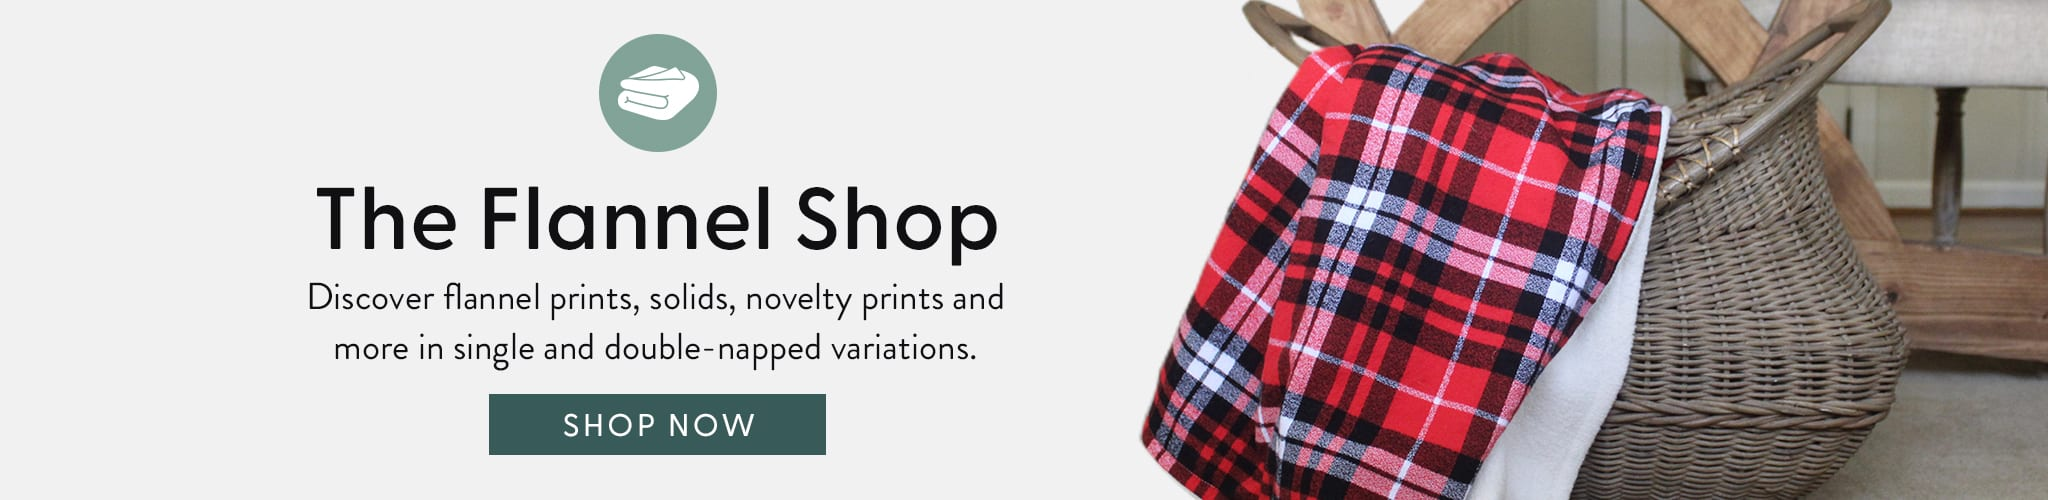 The Flannel Shop